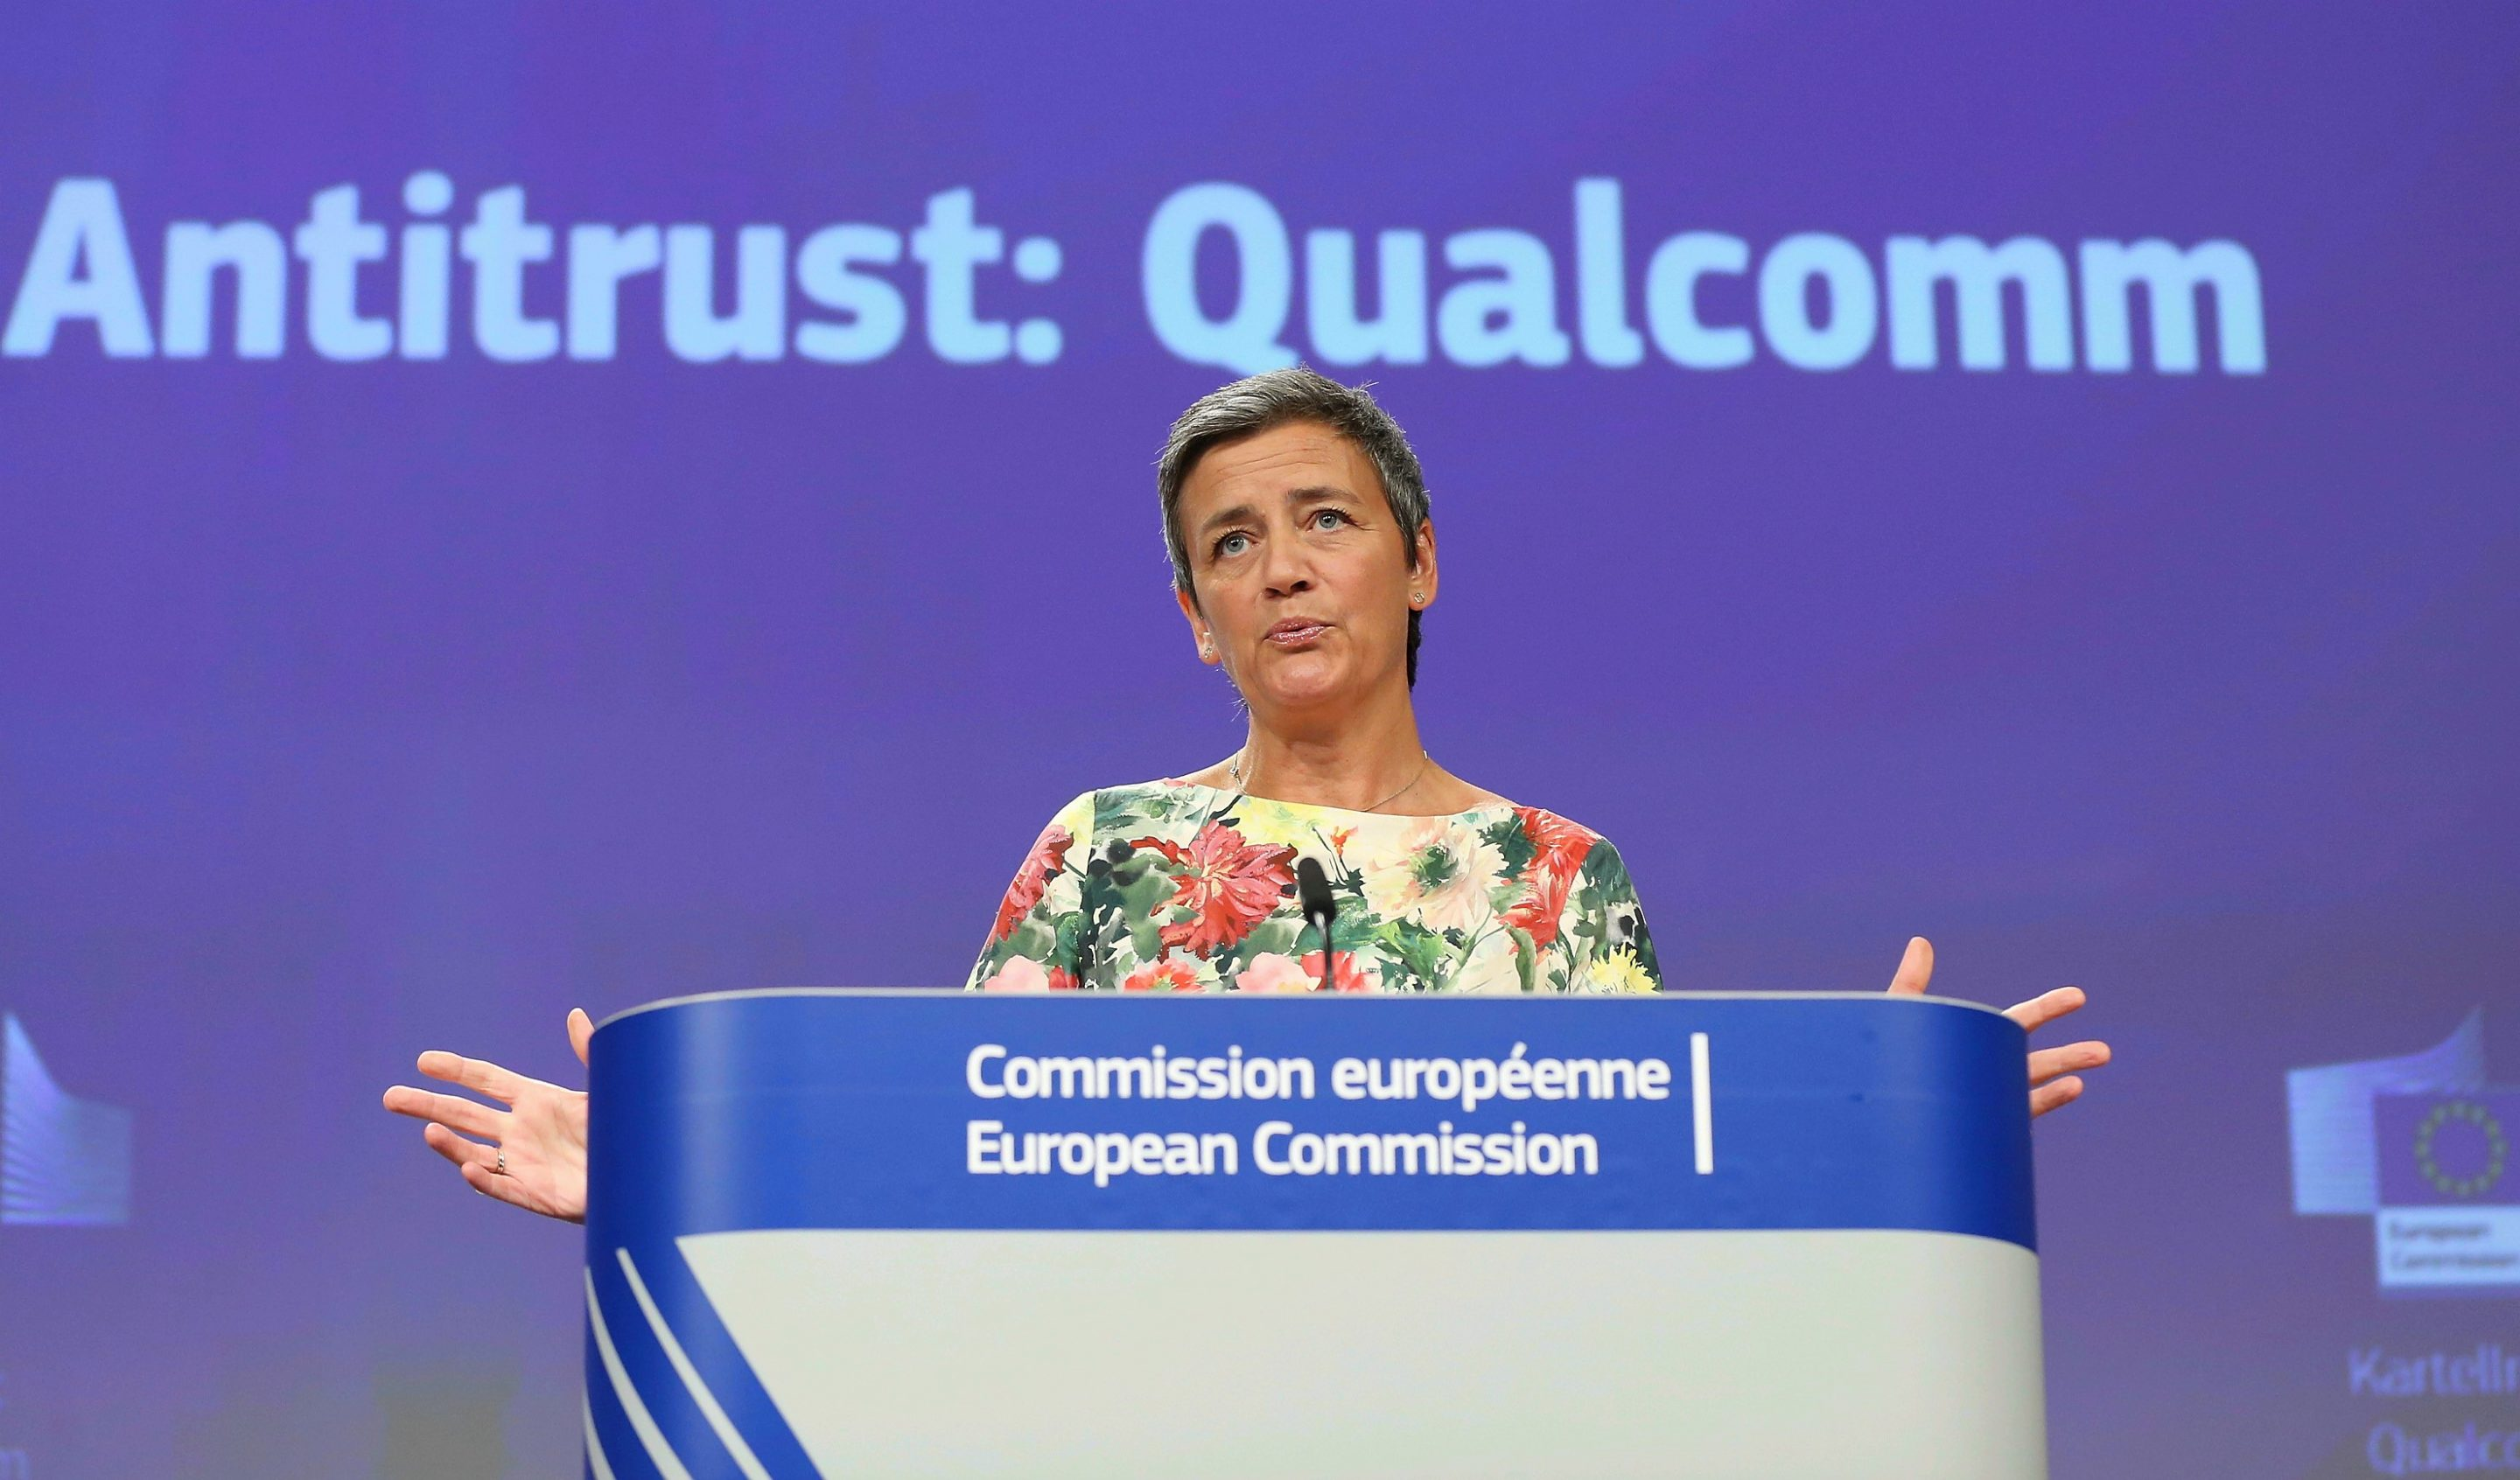 European Commissioner for Competition Margrethe Vestager  announces a $272 million fine for Qualcomm  for deliberately pricing 3G chips low to eliminate a competitor. (Photo by Dursun Aydemir/Anadolu Agency/Getty Images)